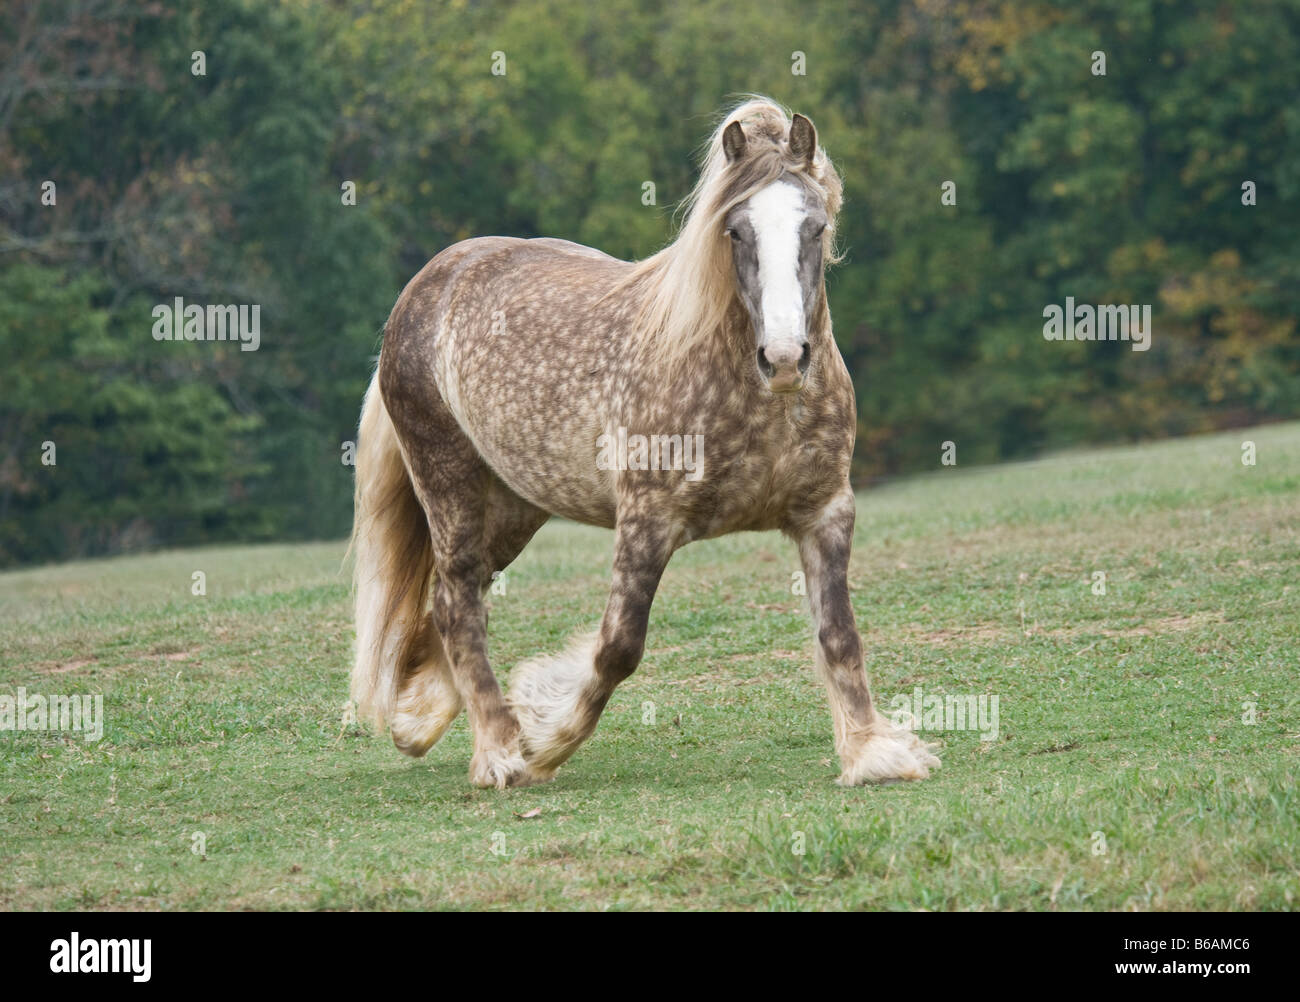 Palomino Mare High Resolution Stock Photography And Images Alamy